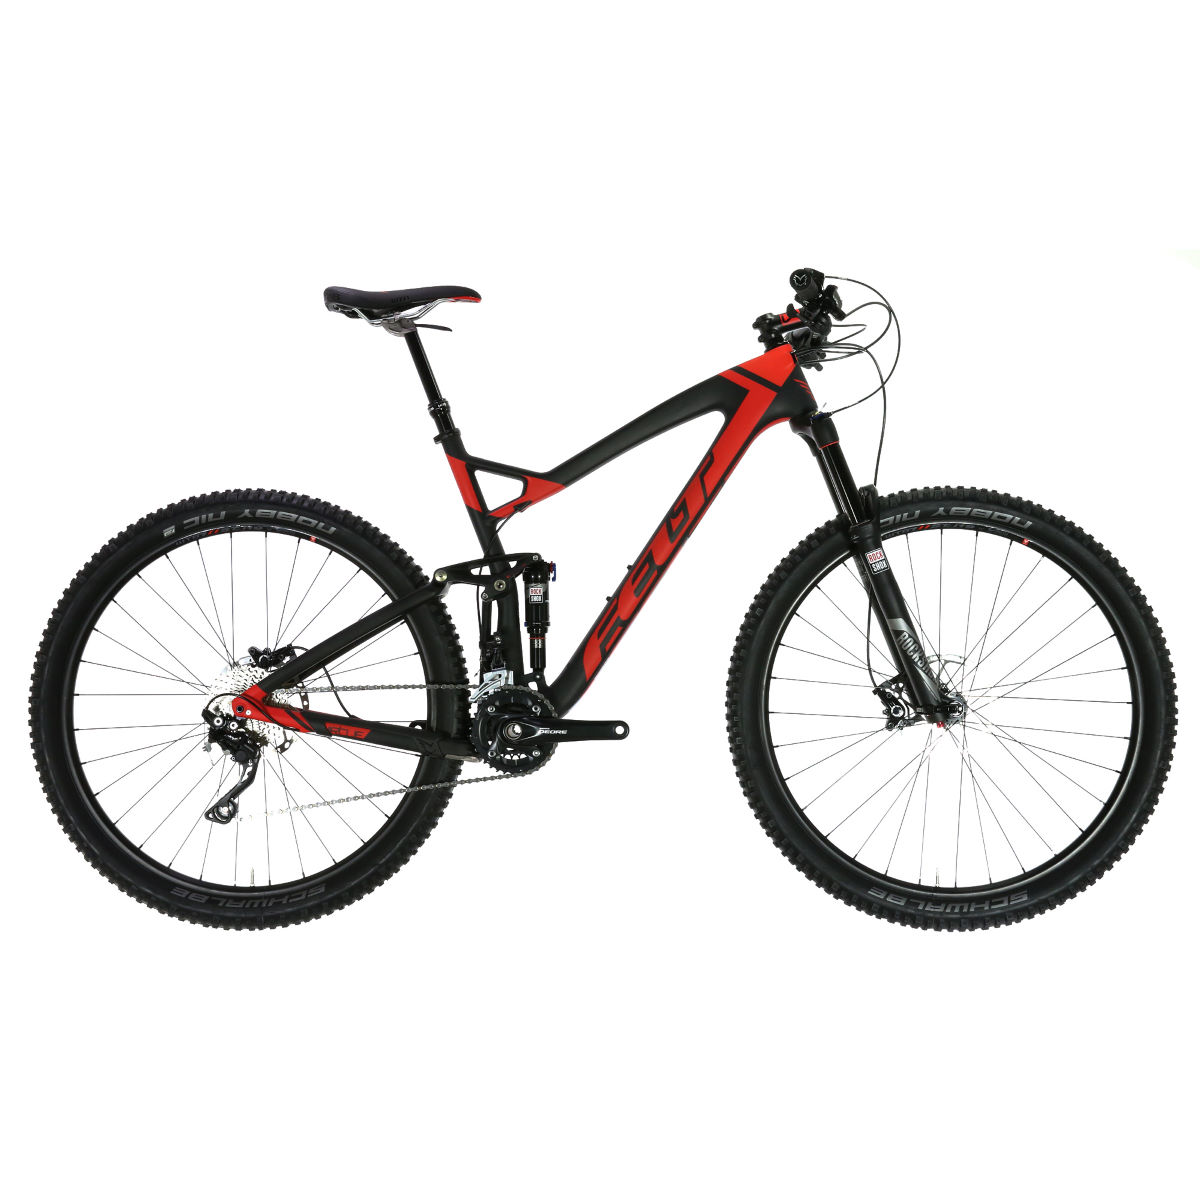 VTT Felt Virtue 3 (2016) - 18'' Carbon/Red VTT tout suspendu